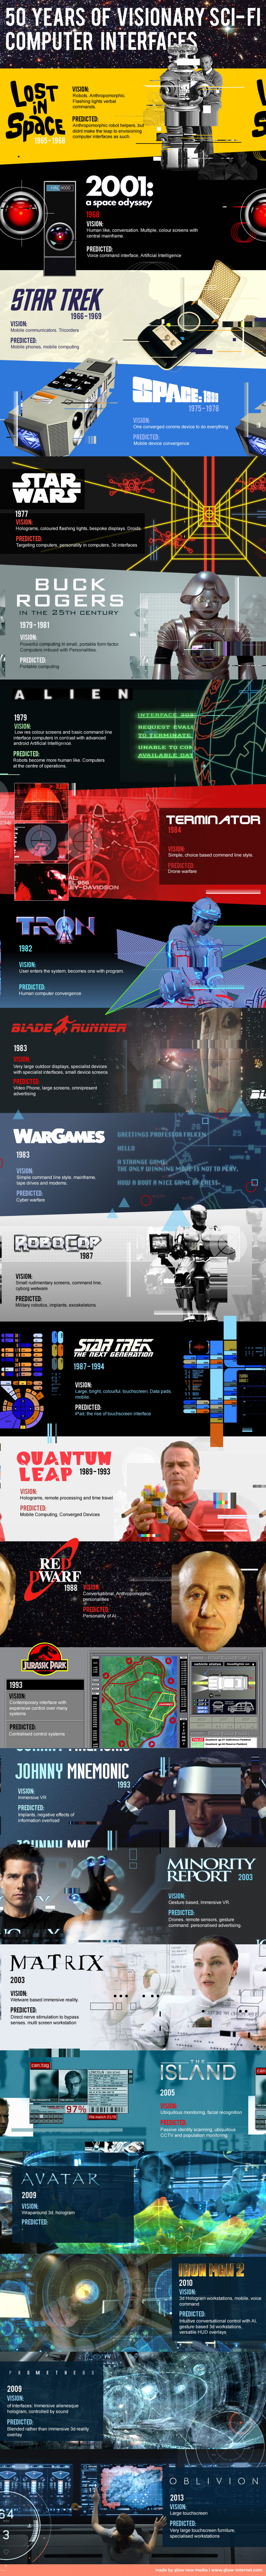 50 Years of visionary Sci Fi Computer Interface Design Infographic